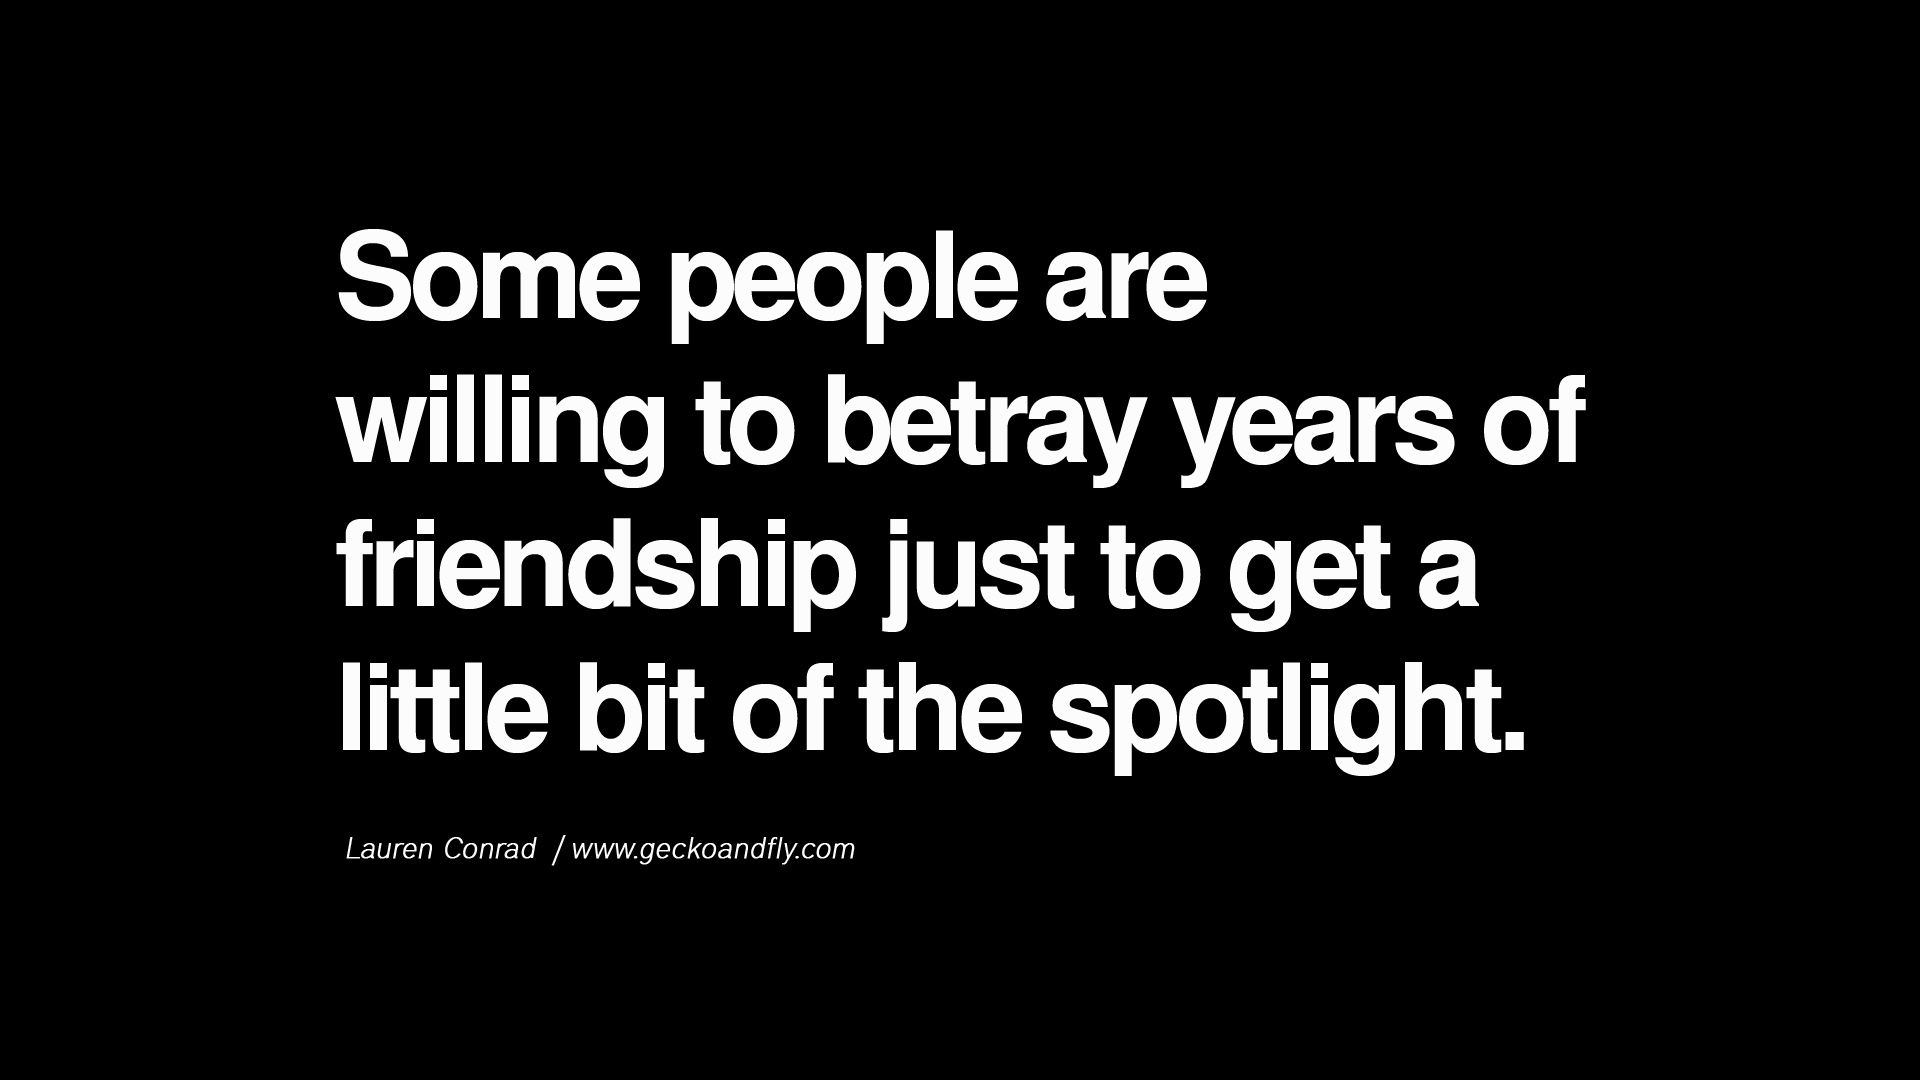 Some Quotes About Friendship Captivating Betrayal Sayings  Quotes On Friendship Trust And Love Betrayal